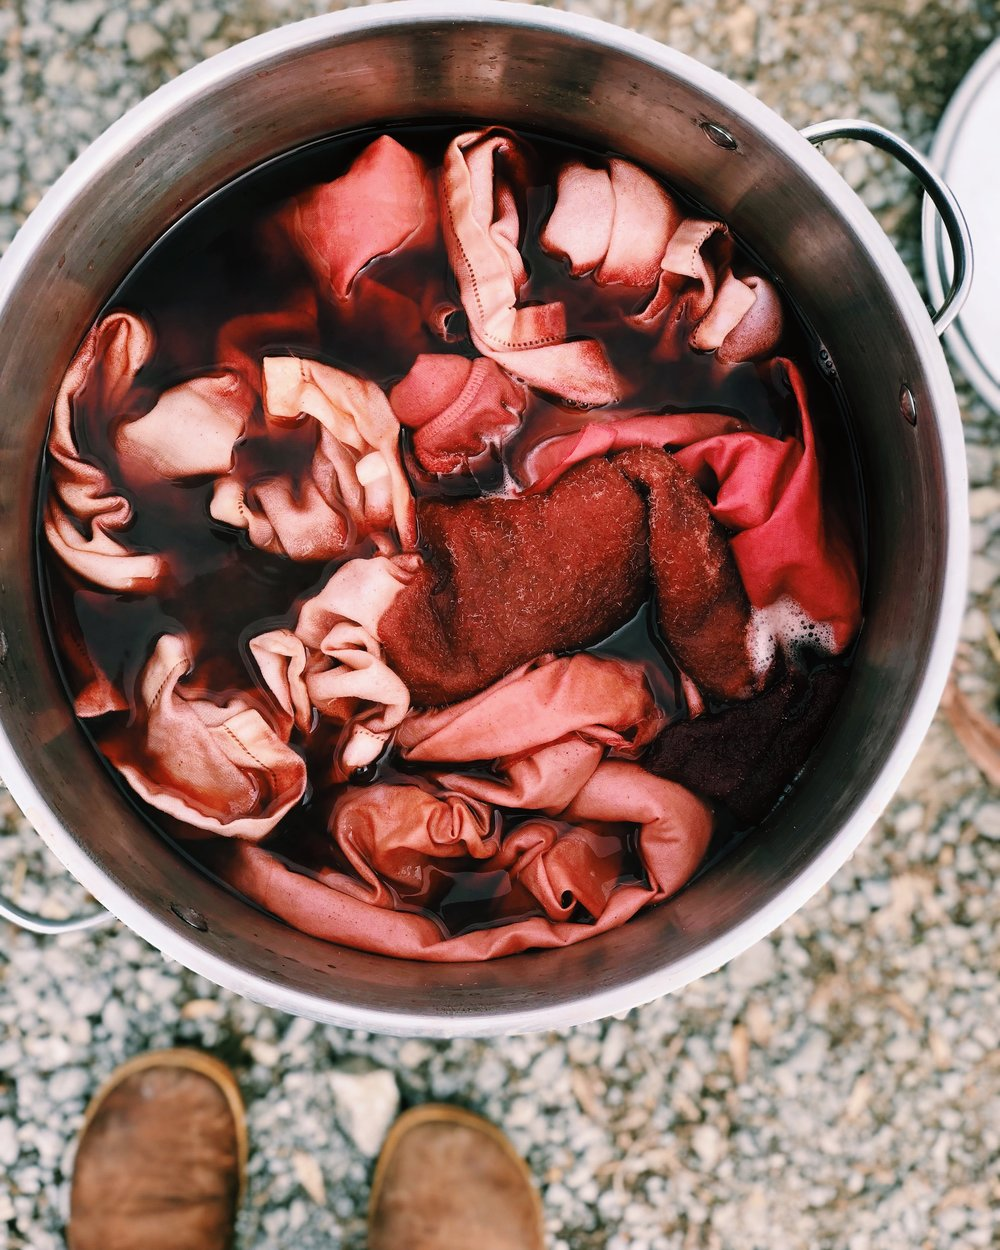 A pot of madder root dye with cotton and wool.